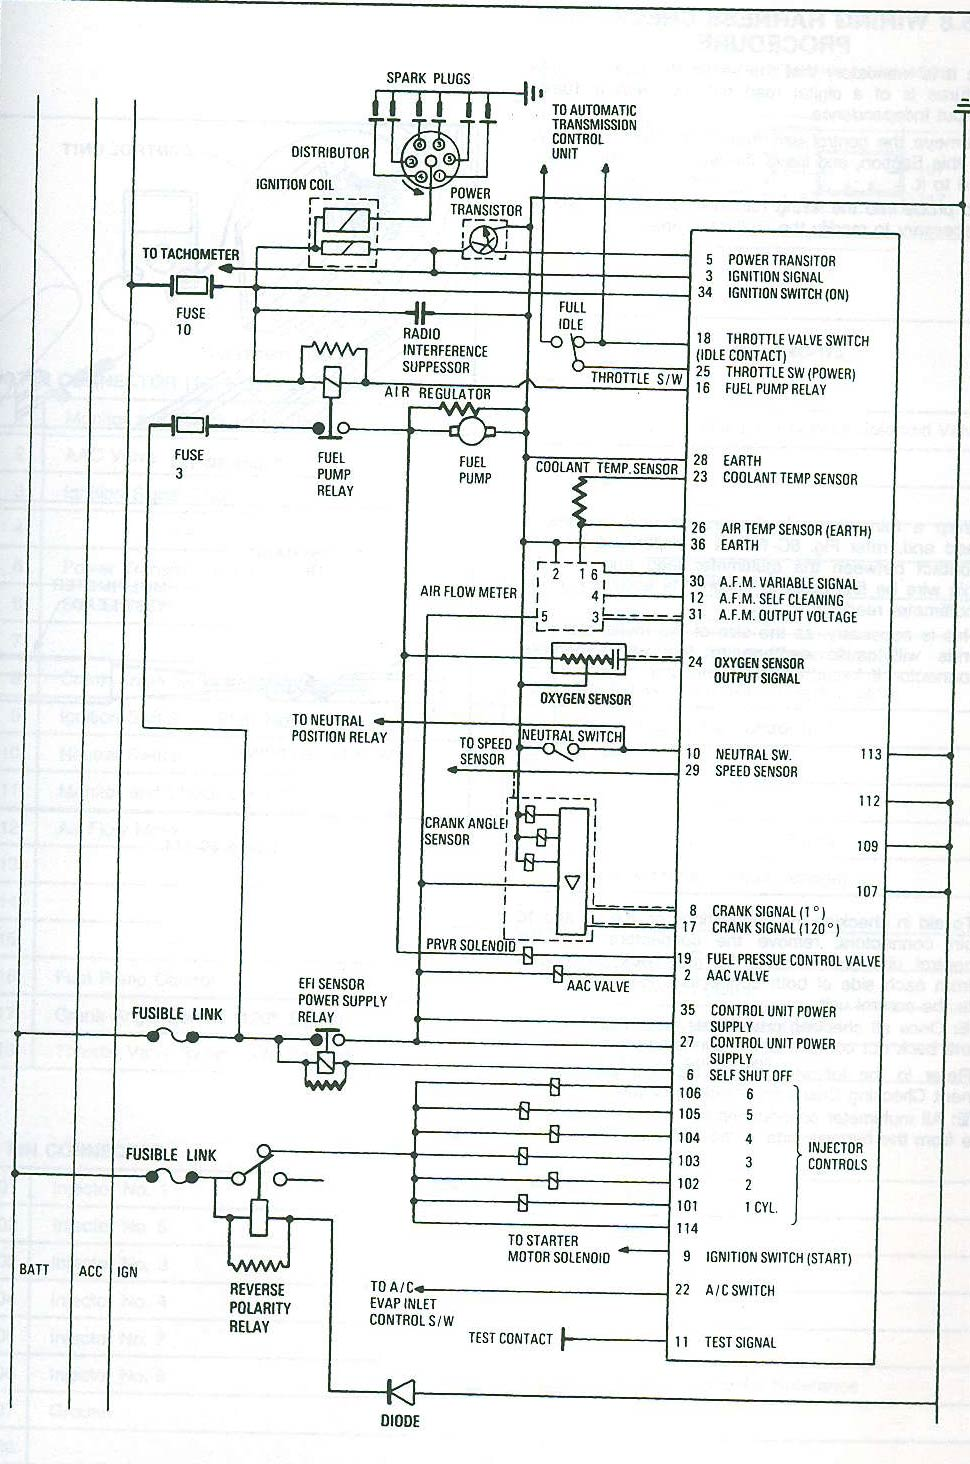 rb20 wiring diagram wiring diagram detailed 1990 240sx egr diagram rb20det engine diagram wiring library ladder [ 970 x 1464 Pixel ]